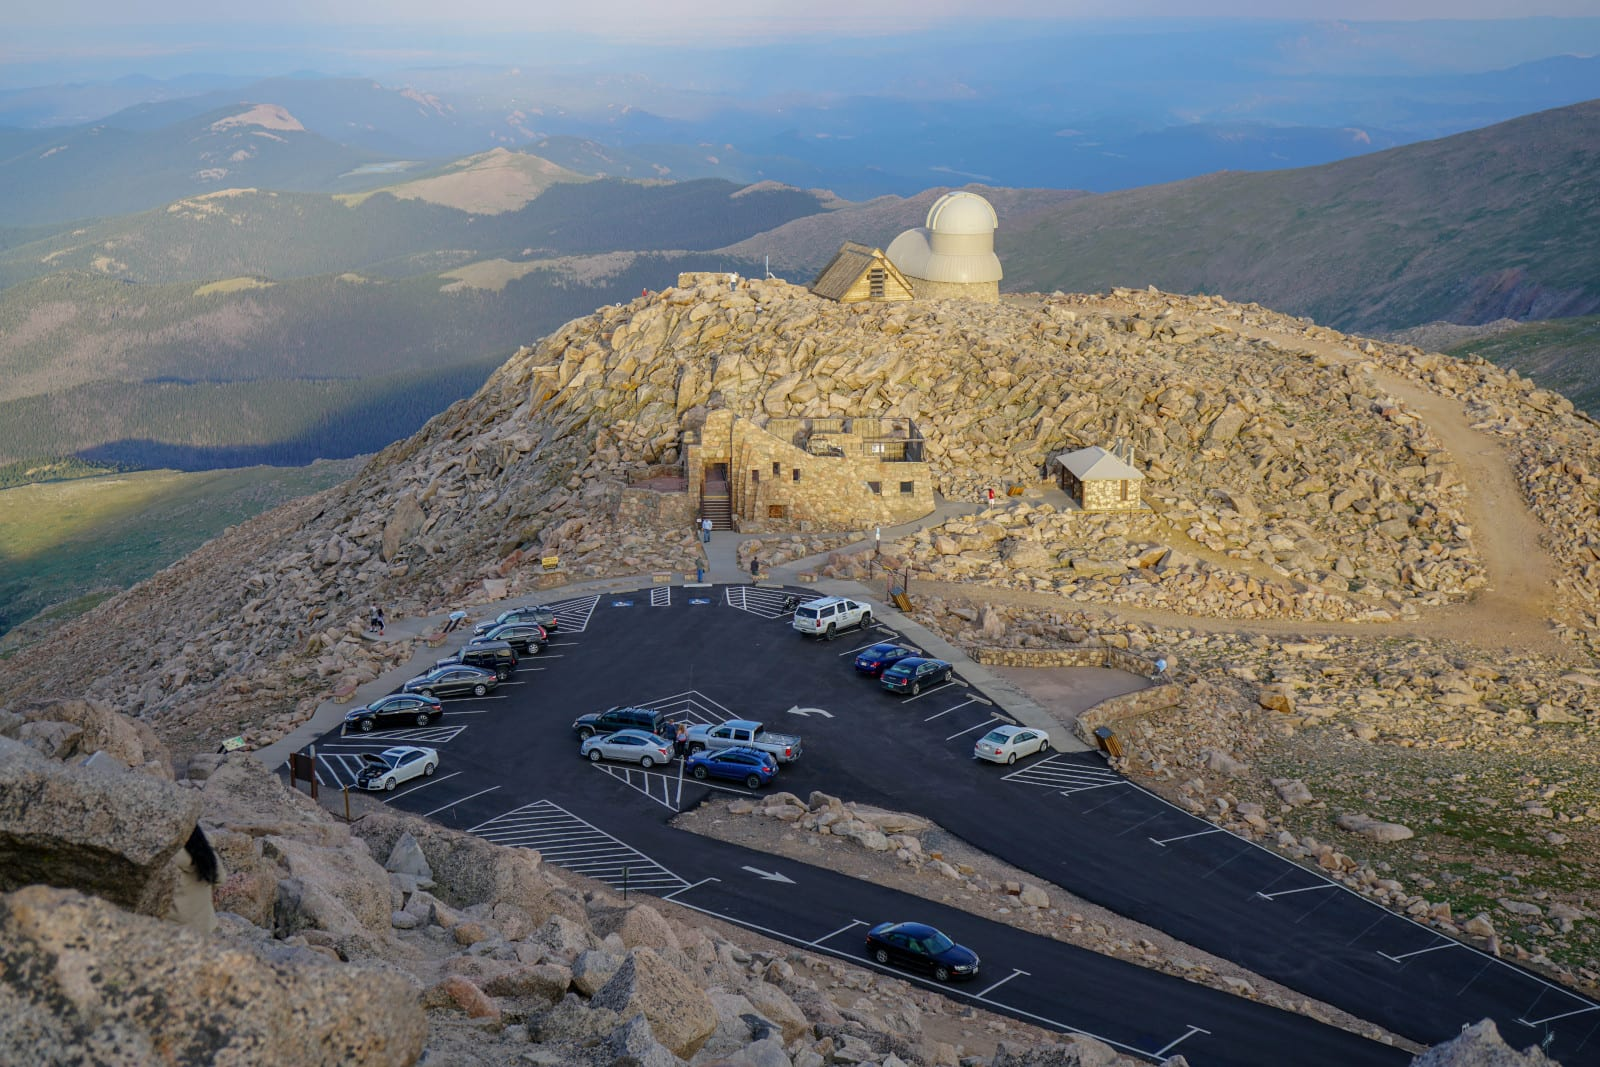 Highest Paved Road Colorado Mt Evans Byway Aerial View from Summit of Parking Lot